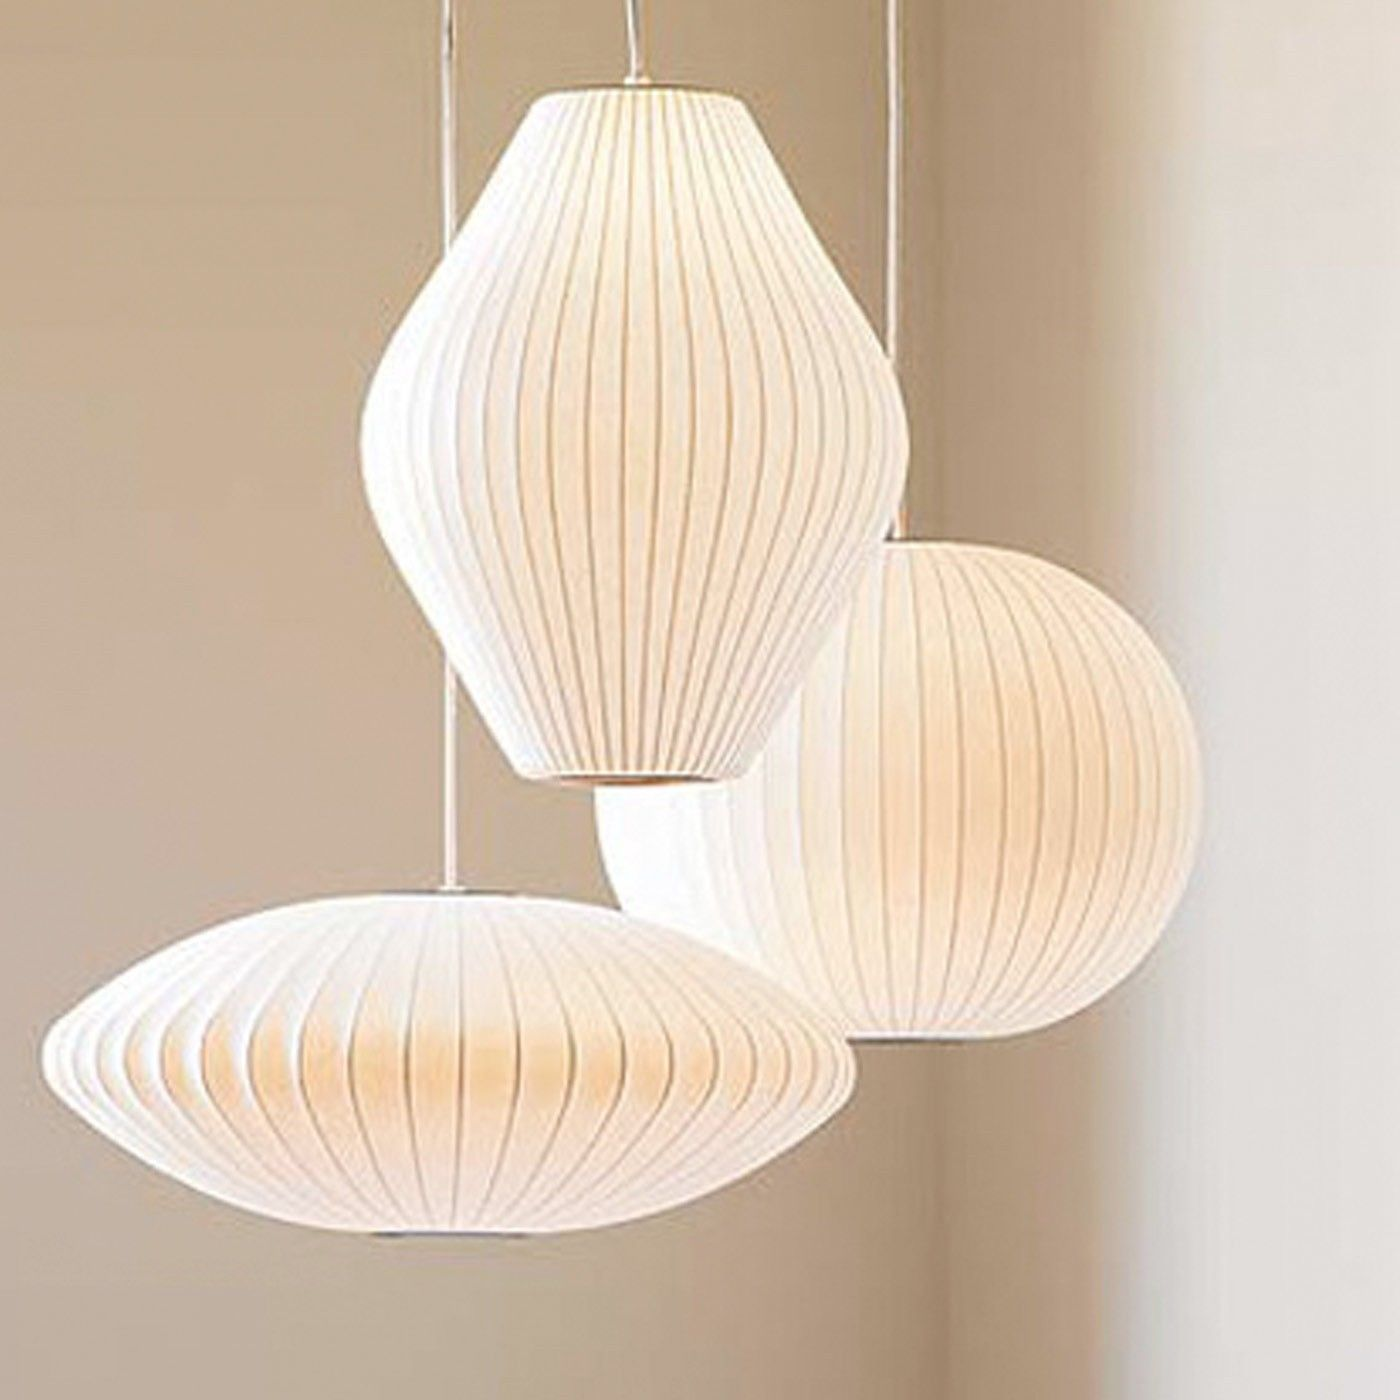 The Bubble Lamp Was Designed By George Nelson In 1947 As An Innovative  Alternative To Pendant